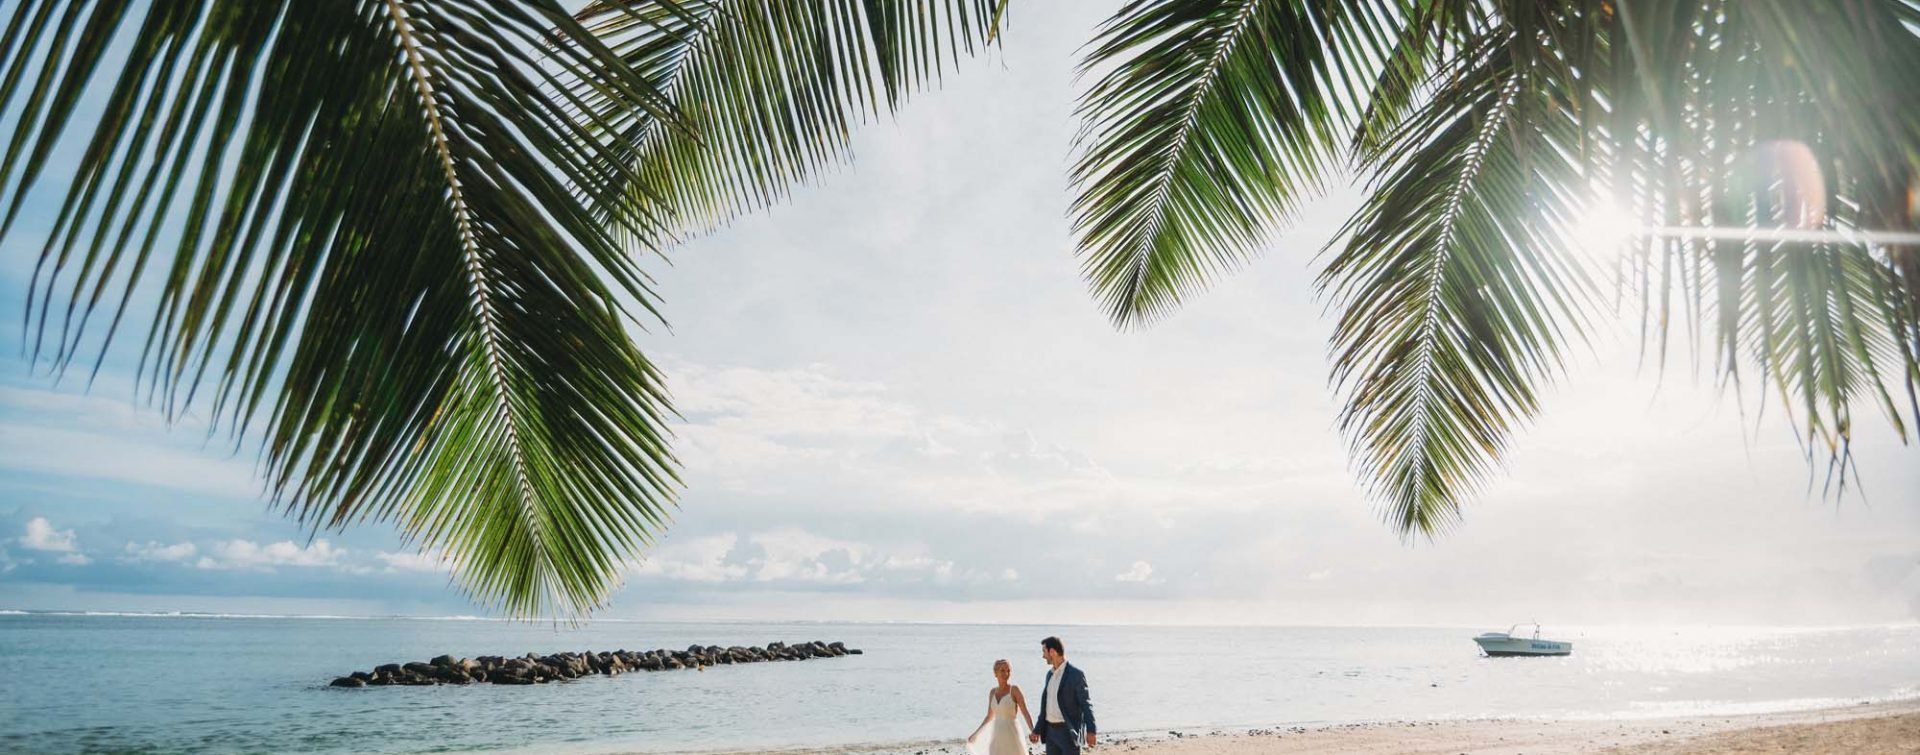 beach wedding mauritius, David + Dominika | Beach wedding, Focus Photography Mauritius, Focus Photography Mauritius